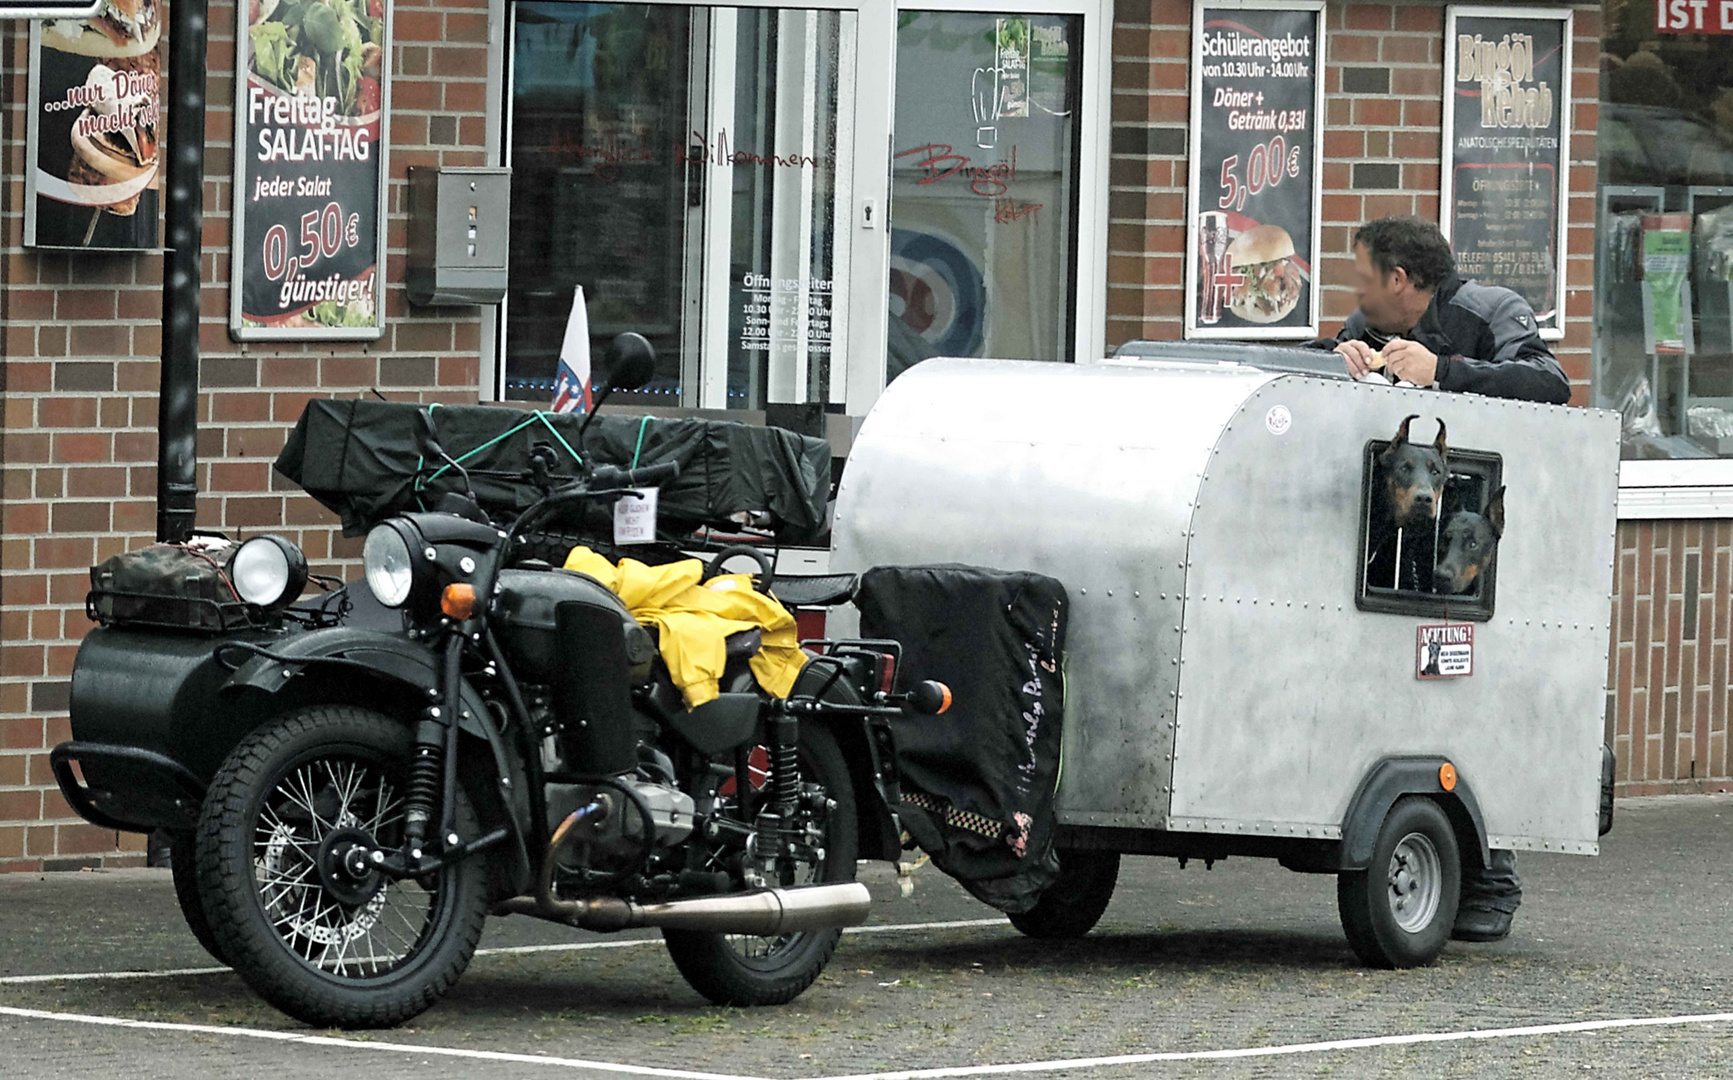 dobermann wohnwagen foto bild hunde motorrad. Black Bedroom Furniture Sets. Home Design Ideas